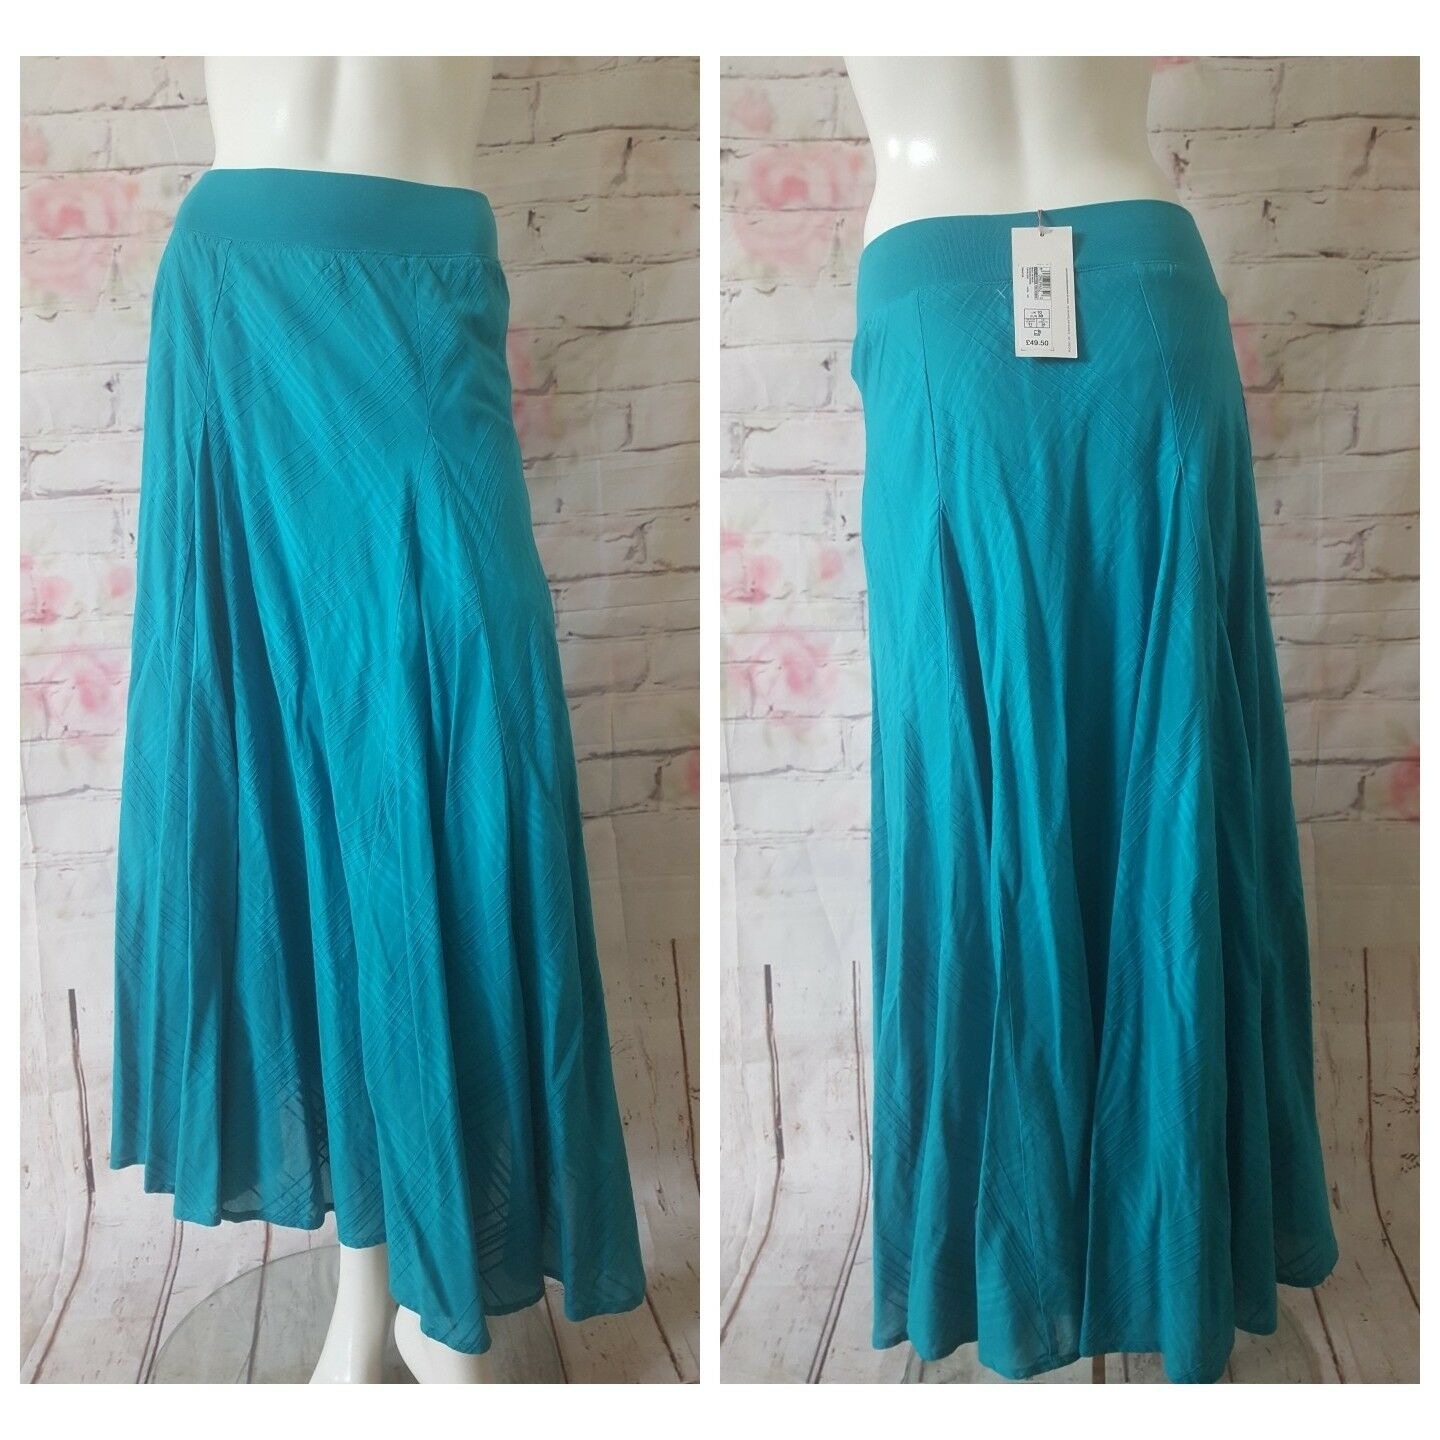 PER UNA M&S LADIES SUMMER HOLIDAY LONG SKIRTS,UK10,TURQOUISE,RRP.50,NEW